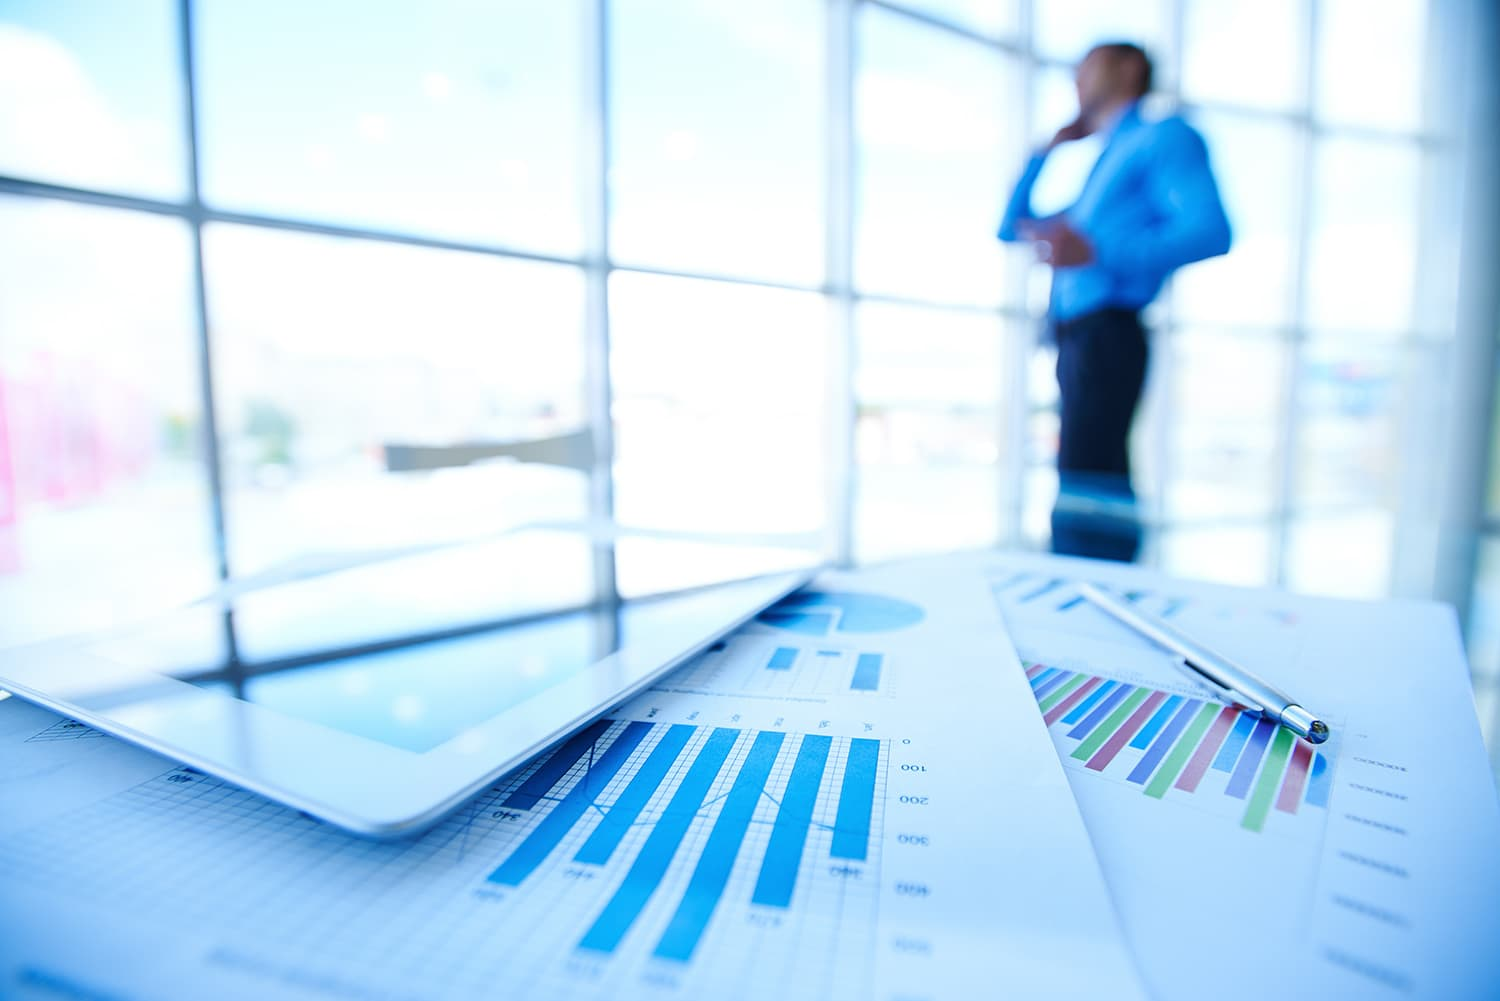 Reduce manufacturing costs and streamline business reporting through SapphireOne ERP application